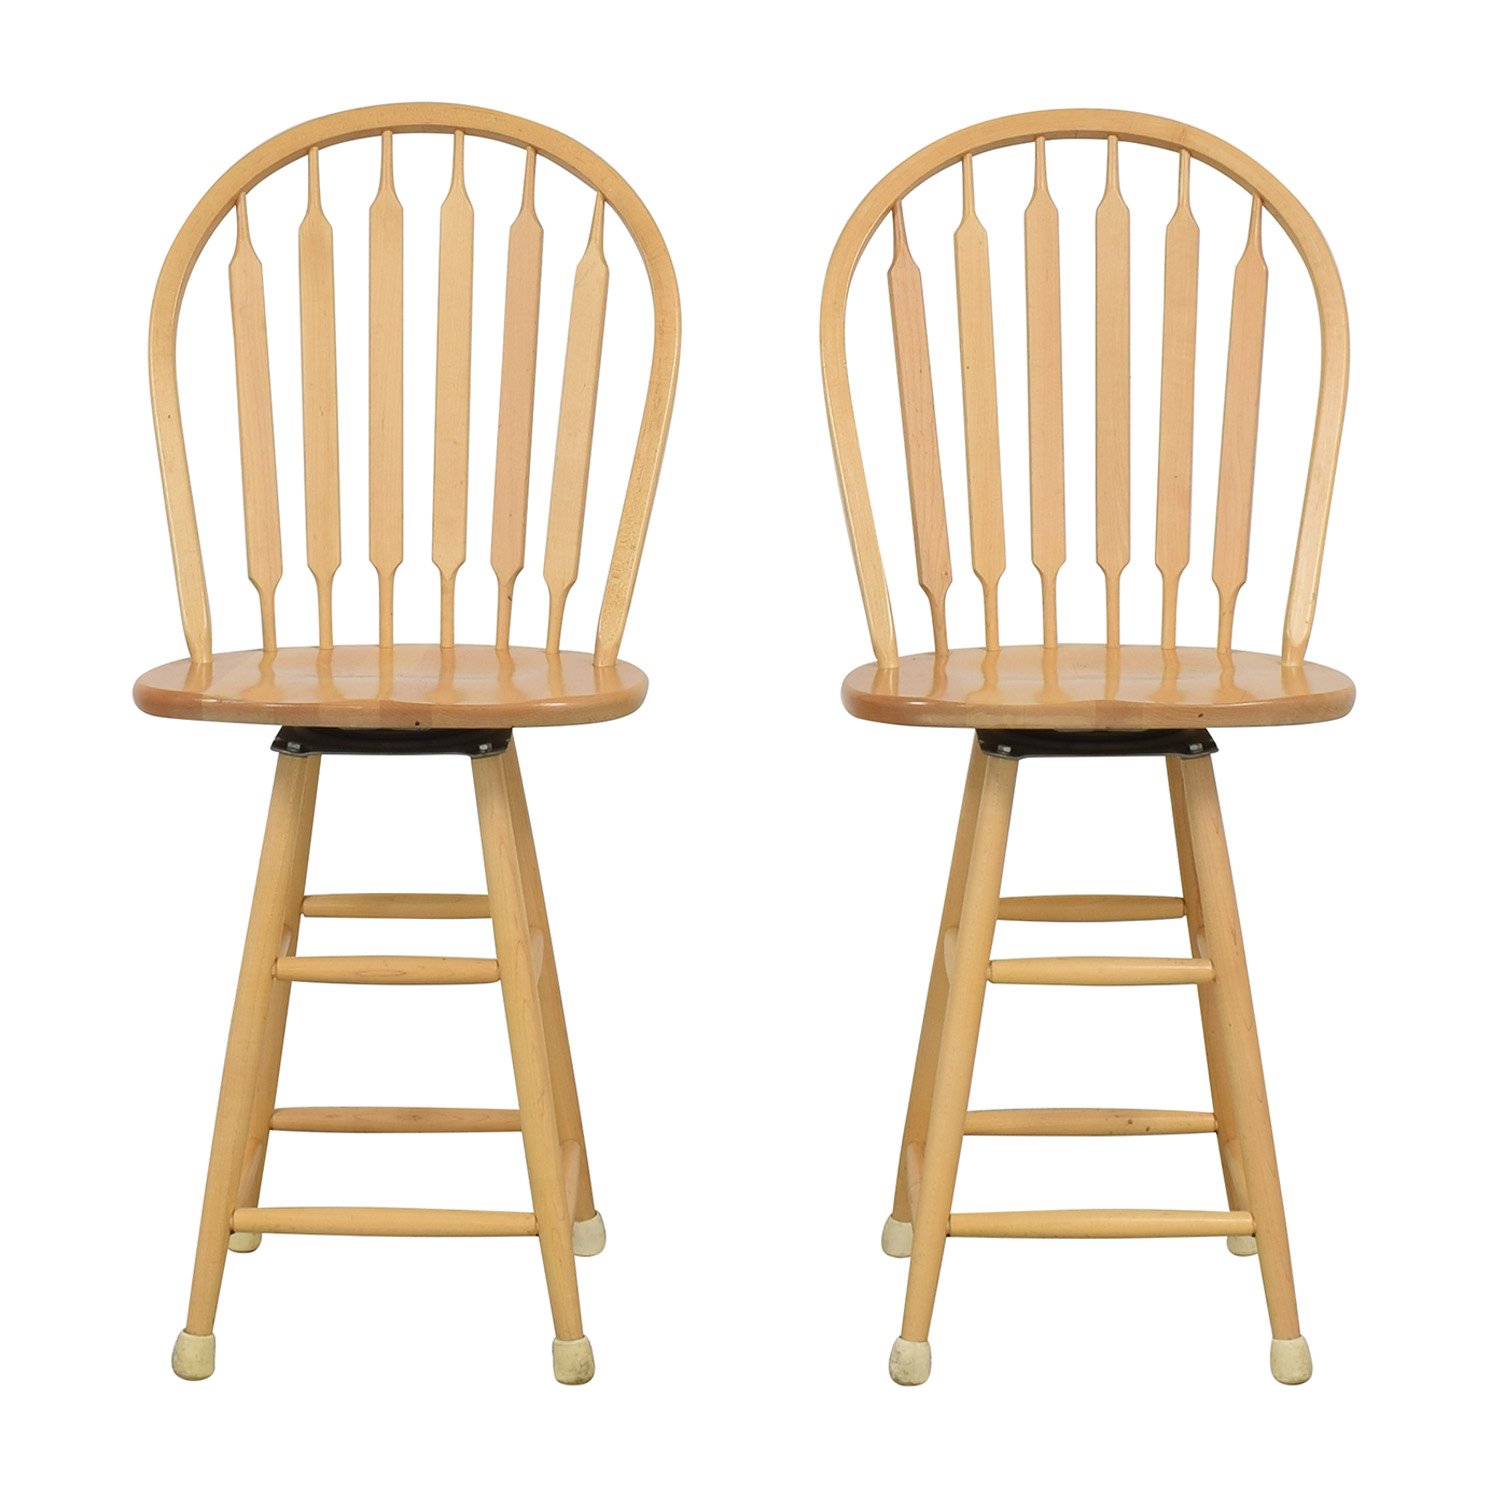 Counter Height Windsor Chairs for sale